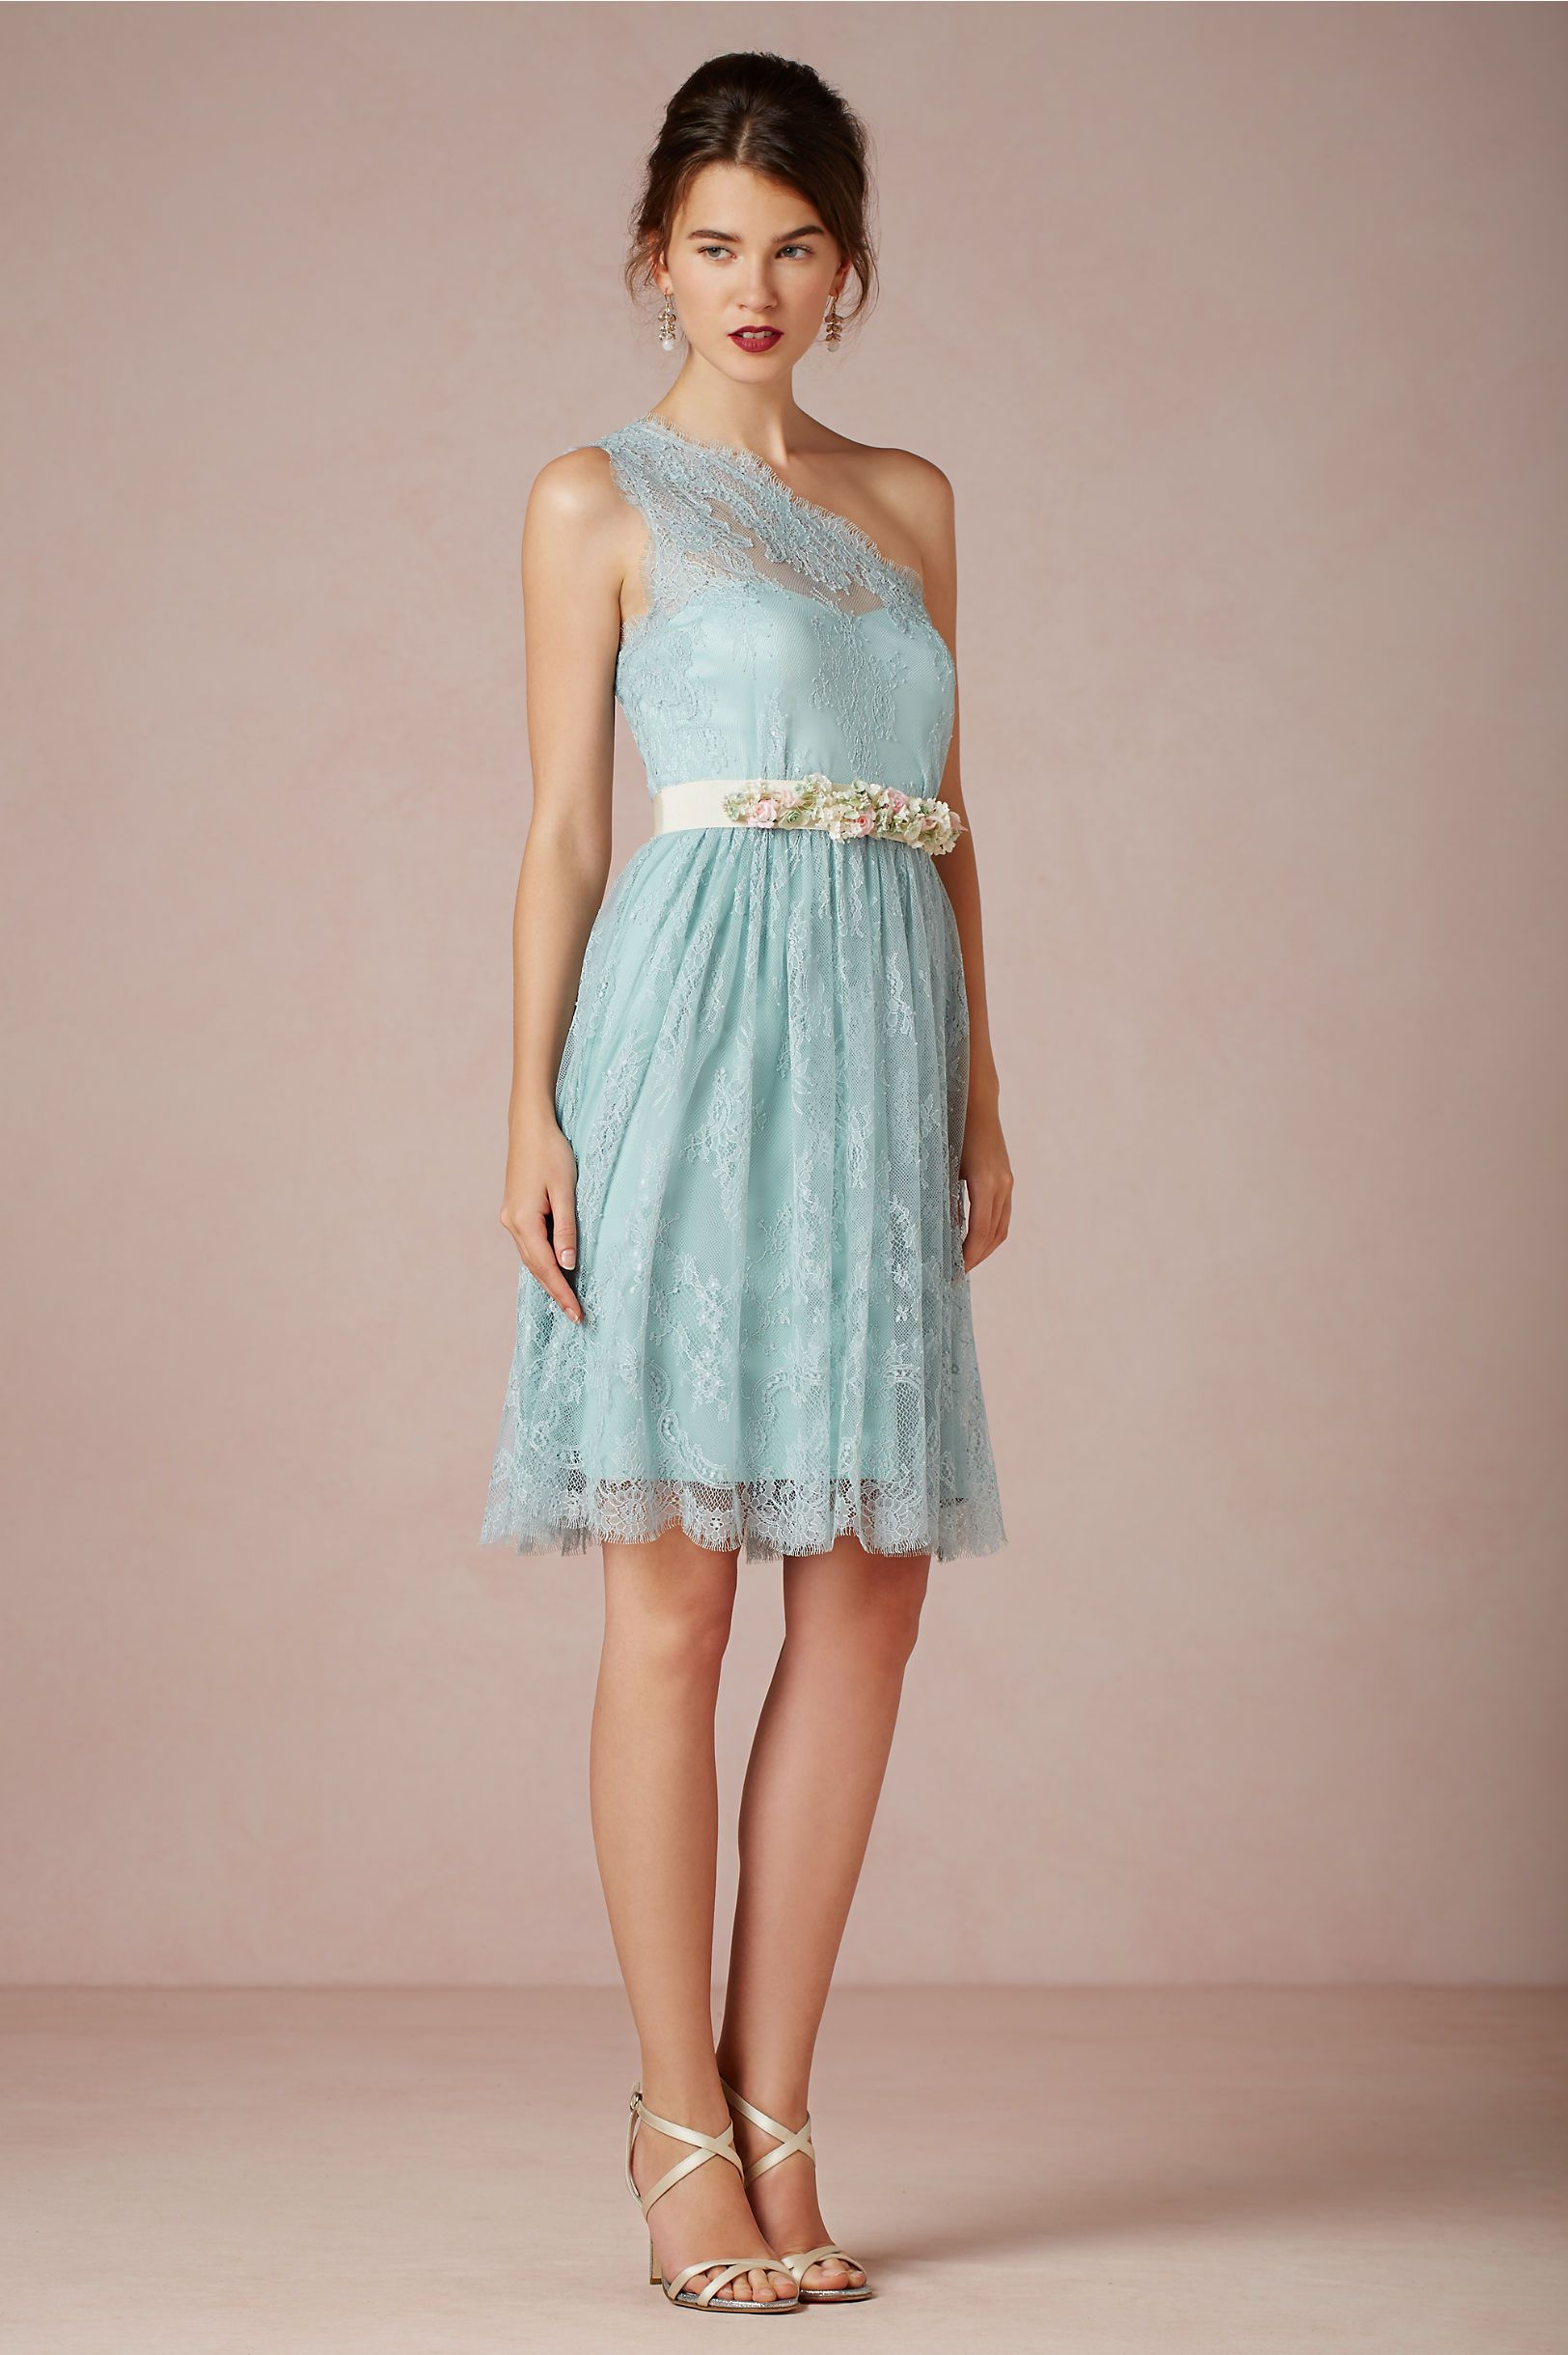 Ariel Bridesmaids Dress from BHLDN in powder blue | Summer Wedding ...